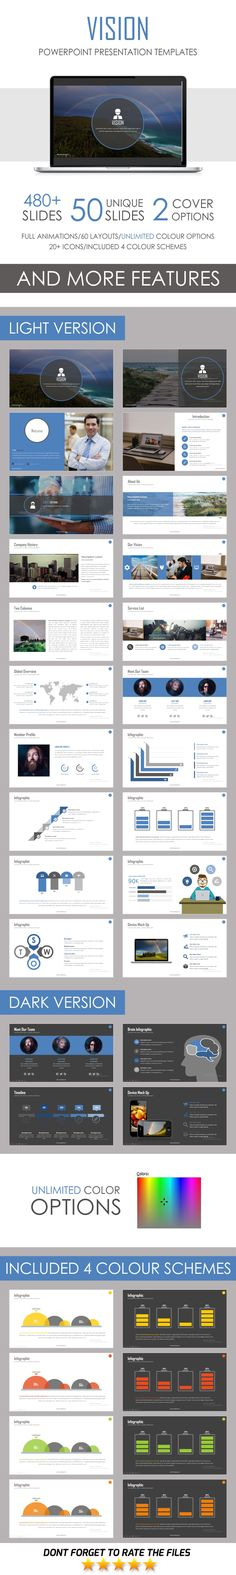 Vision PowerPoint Template. Download here…